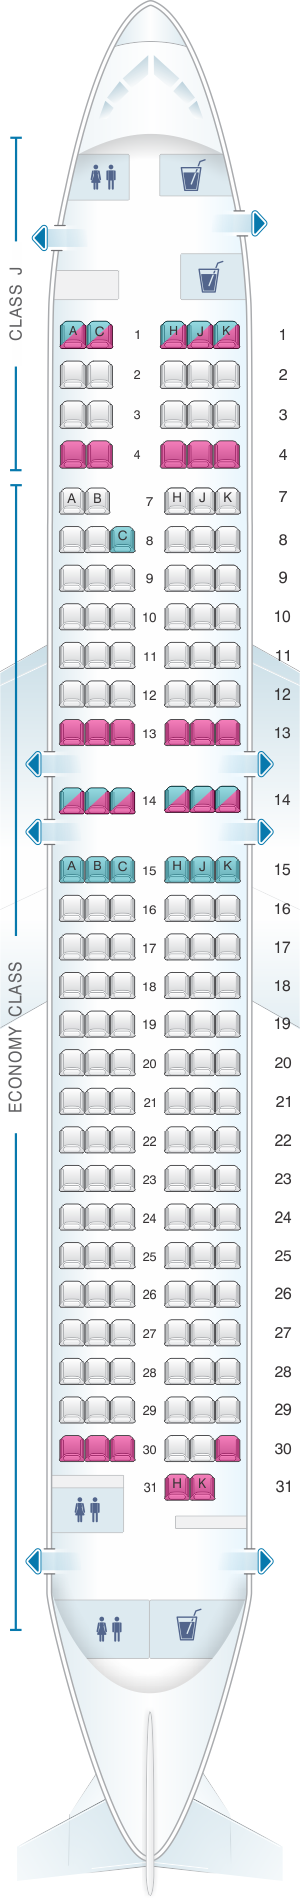 Seat map for Japan Airlines (JAL) Boeing B737 800 V35